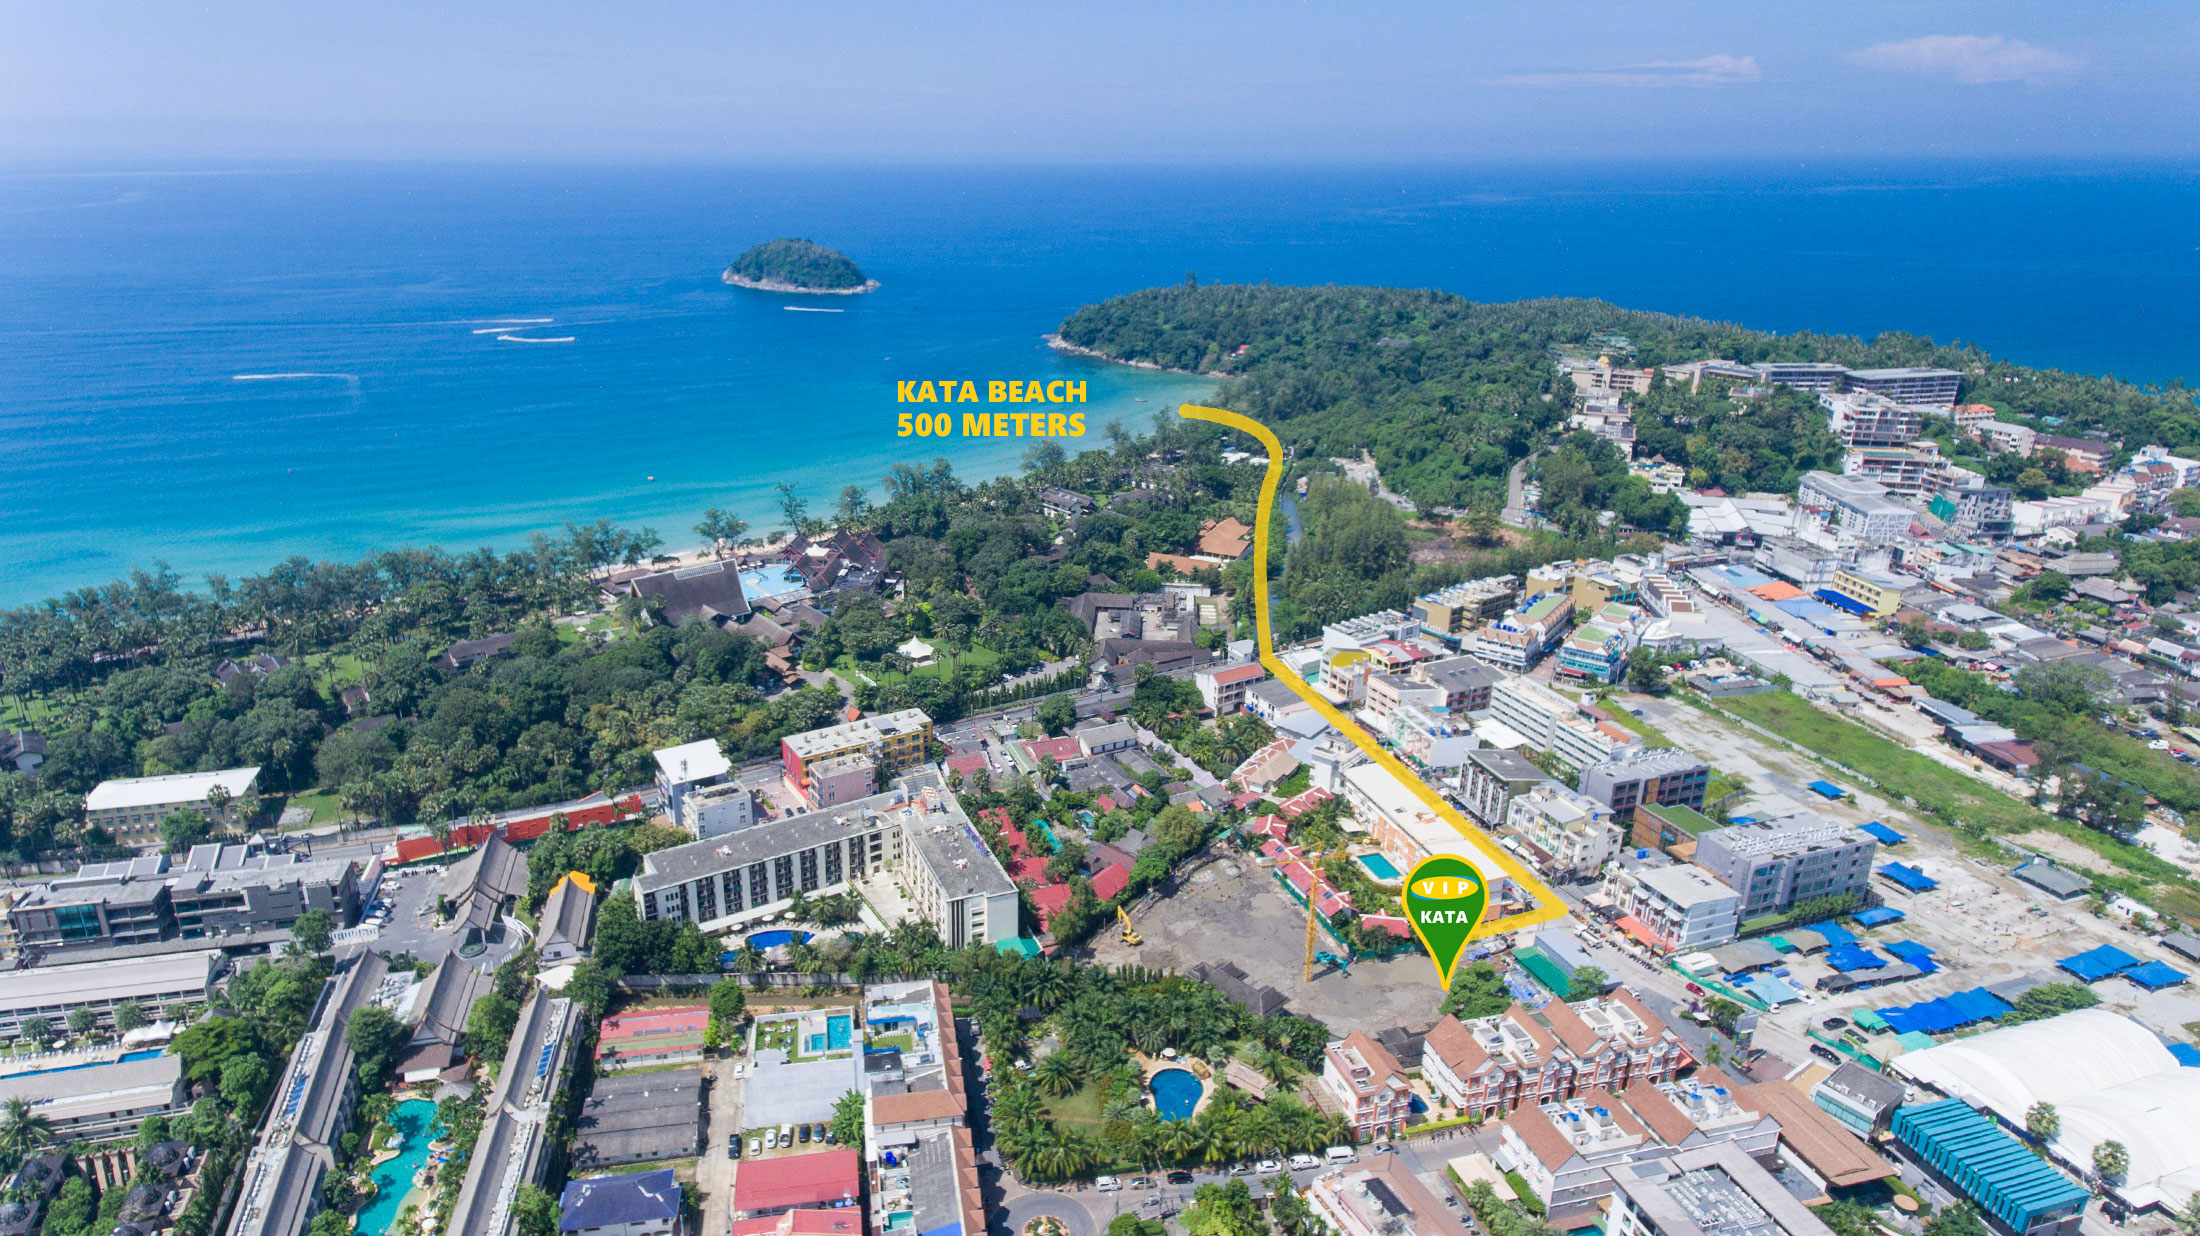 vip kata condominium location phuket